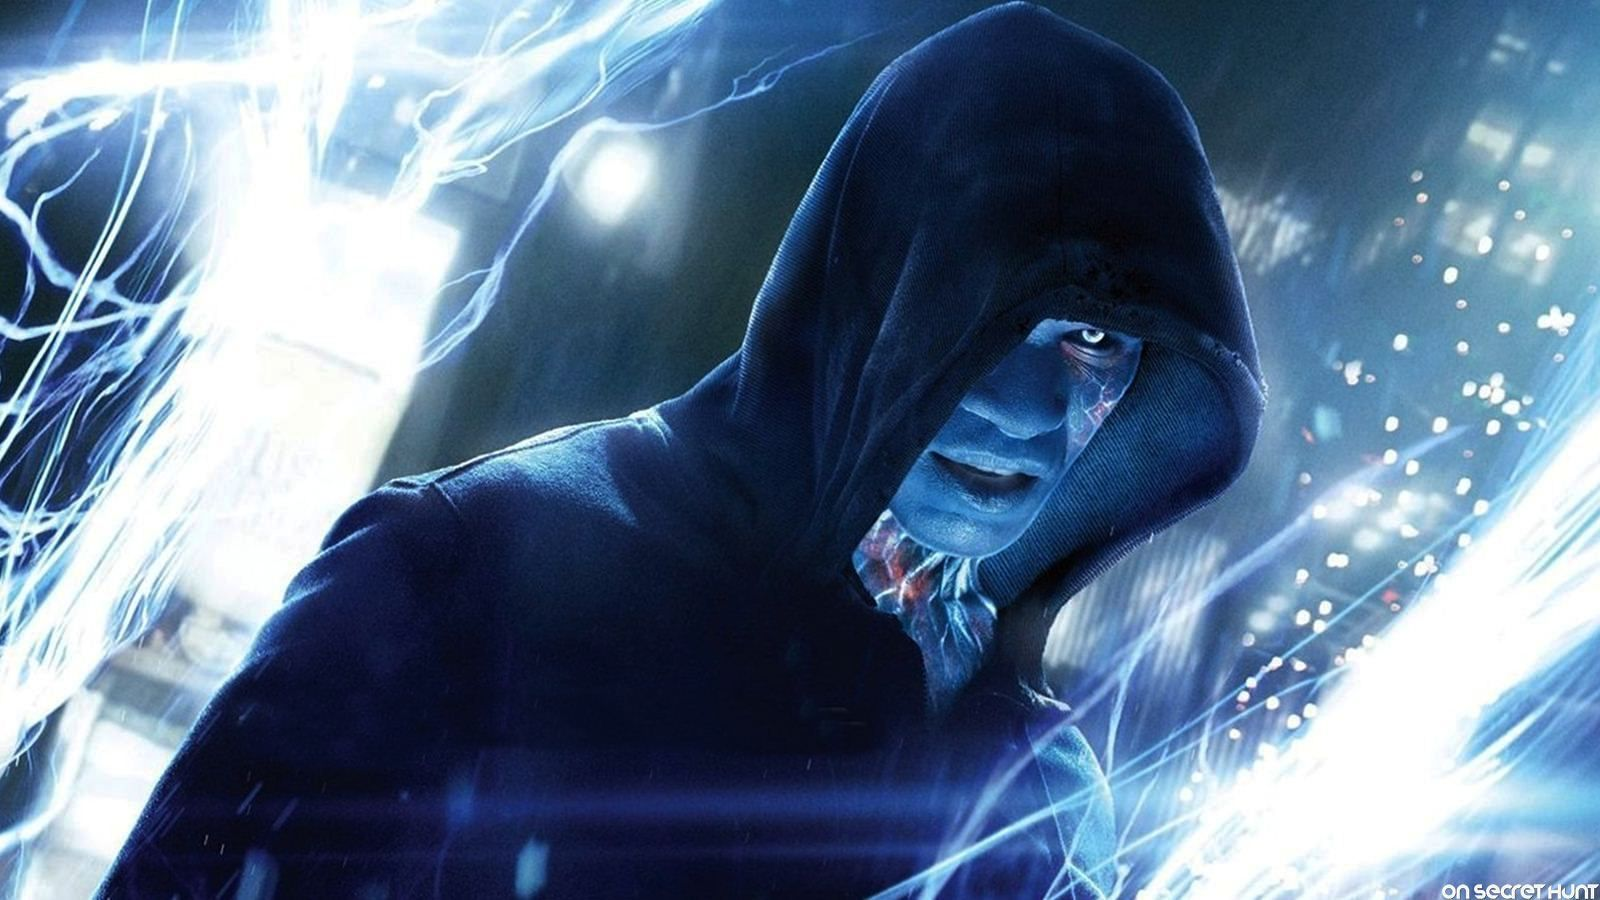 The Amazing Spiderman Wallpapers [hd Facebook Cover - Amazing Spider Man Electro - HD Wallpaper